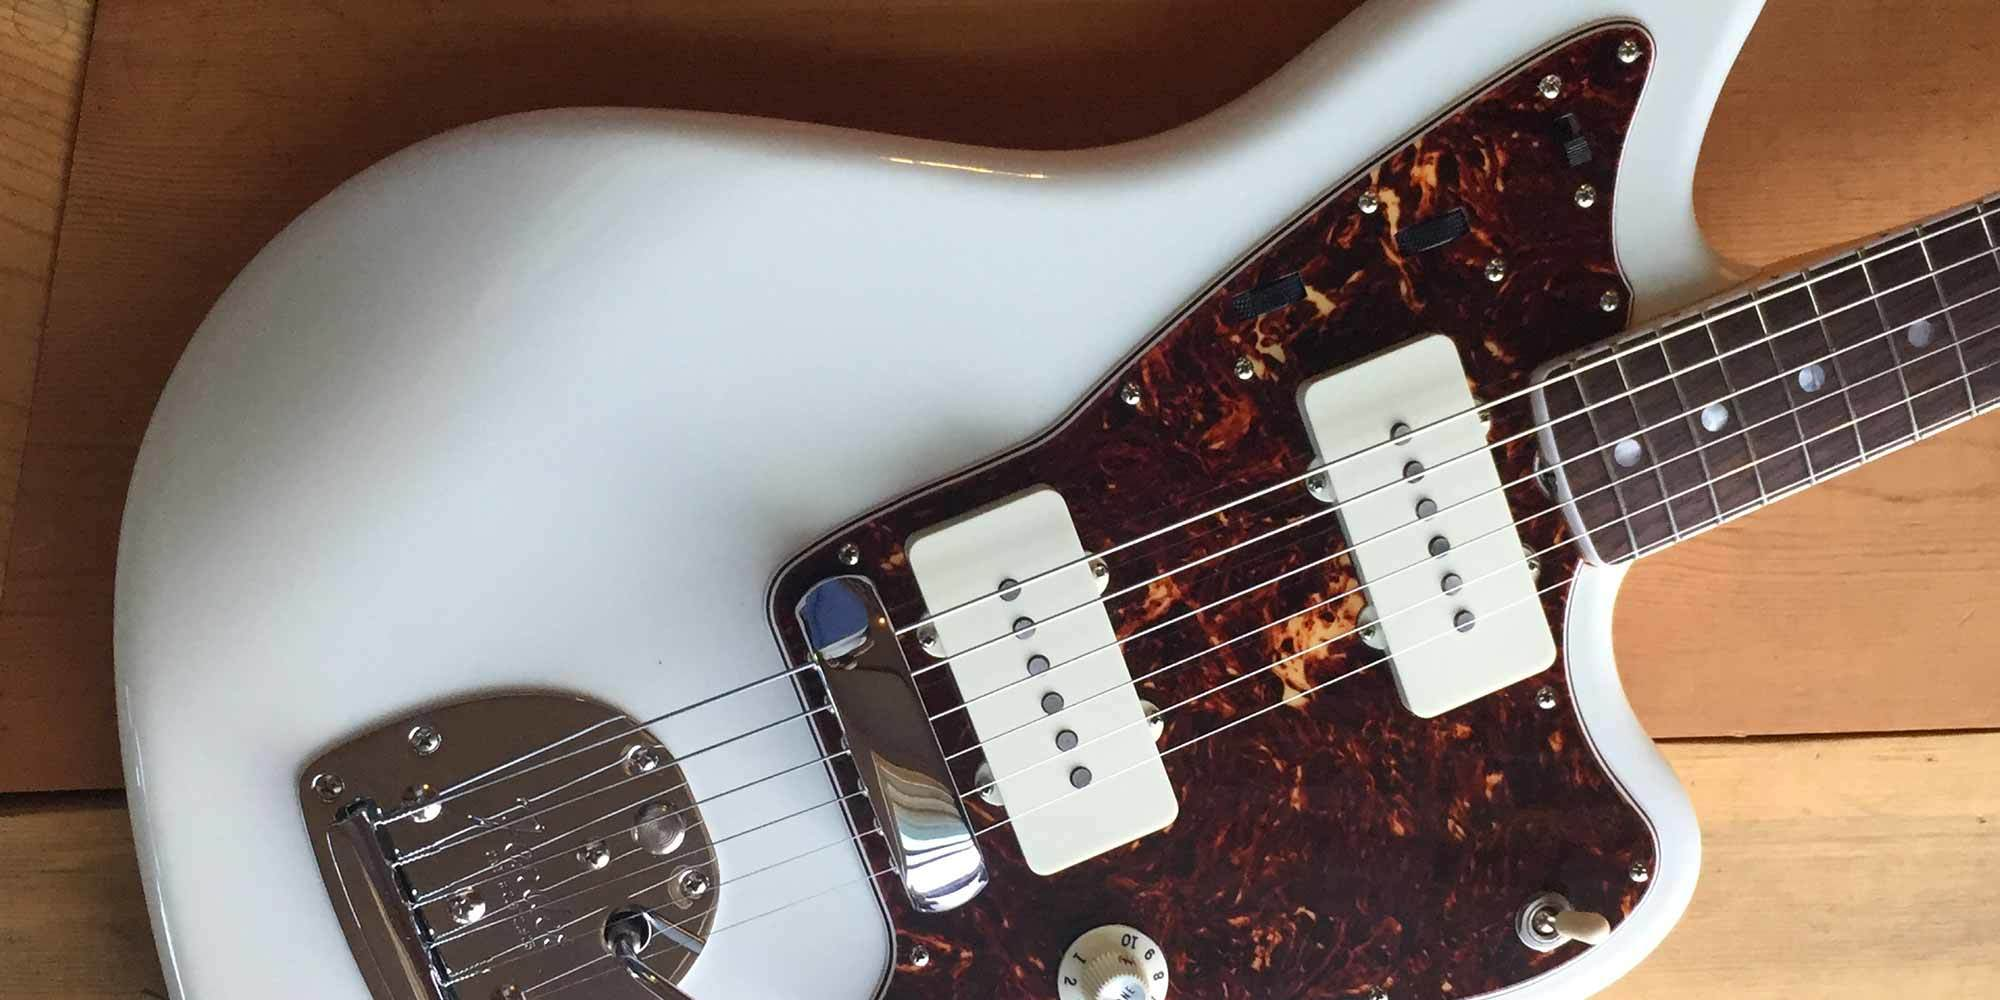 1992 93 mij stratocaster wiring diagram free download \u2022 oasis dl co strat guitar wiring diagram american vs japanese fender jazzmasters what's the reverb news